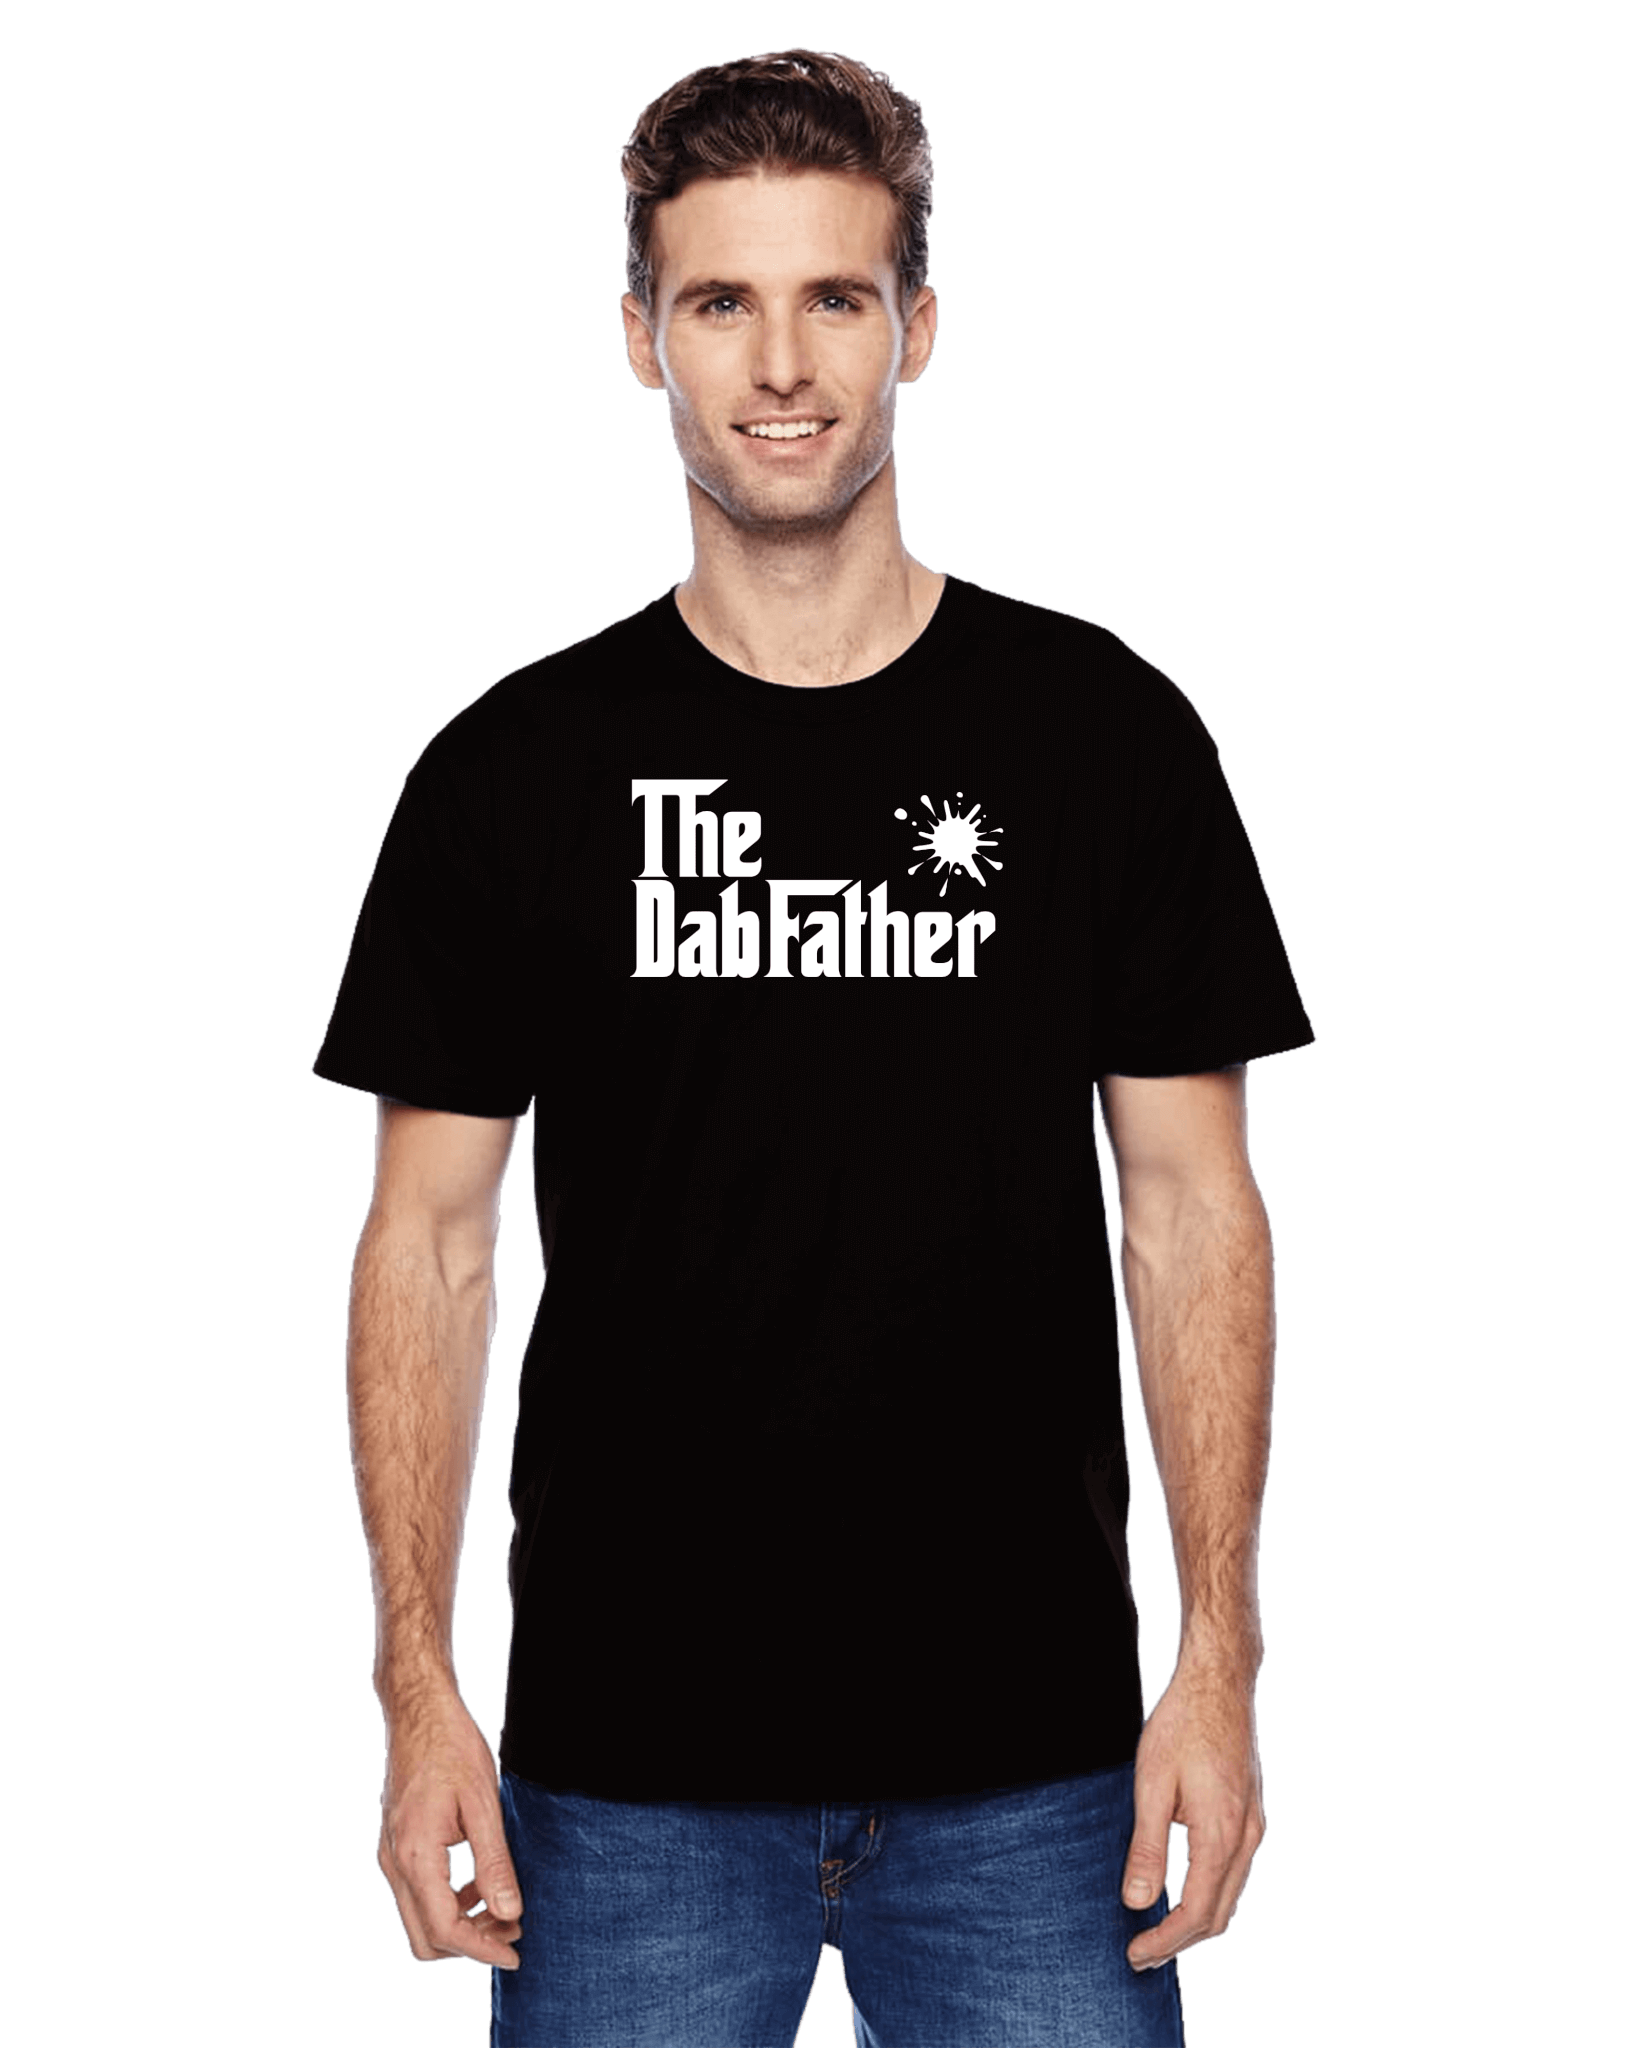 the dabfather 420 tshirt black